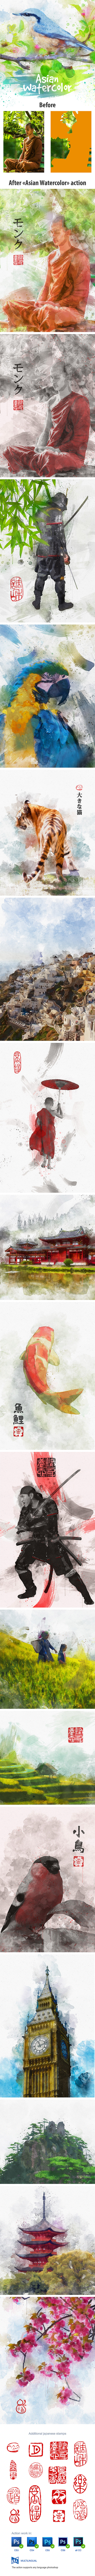 Asian Watercolor Photoshop Action - Photo Effects Actions